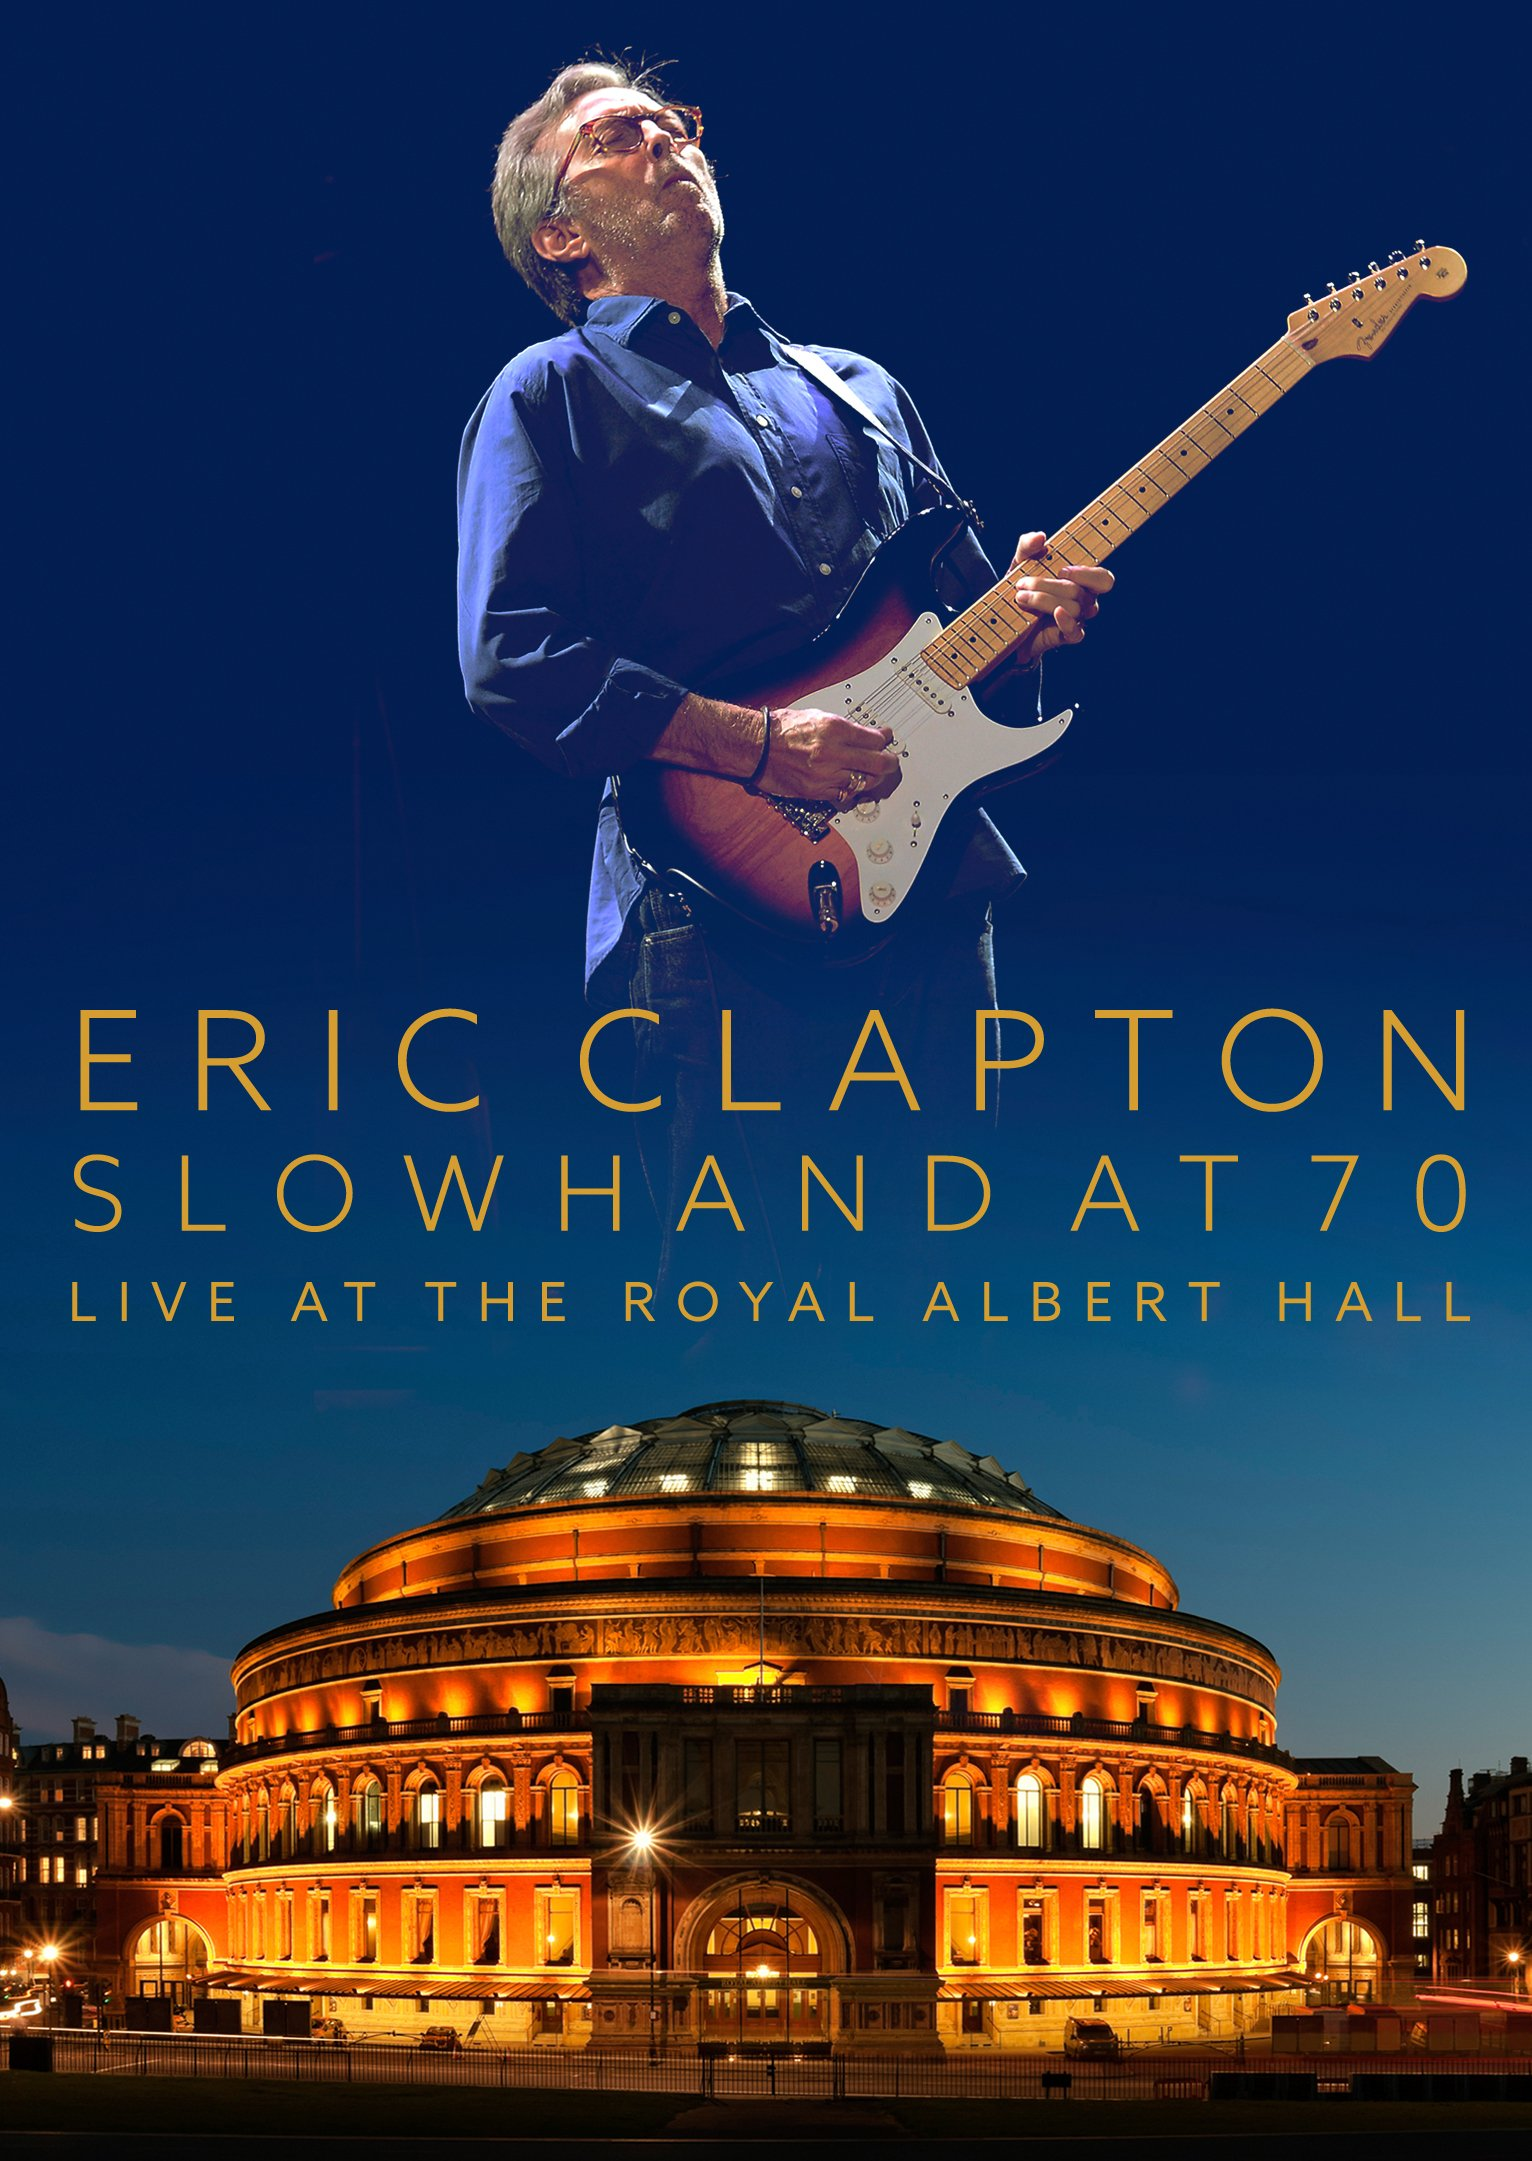 DVD : Eric Clapton - Eric Clapton: Slowhand at 70 - Live at the Royal Albert Hall (With CD, 3 Disc)